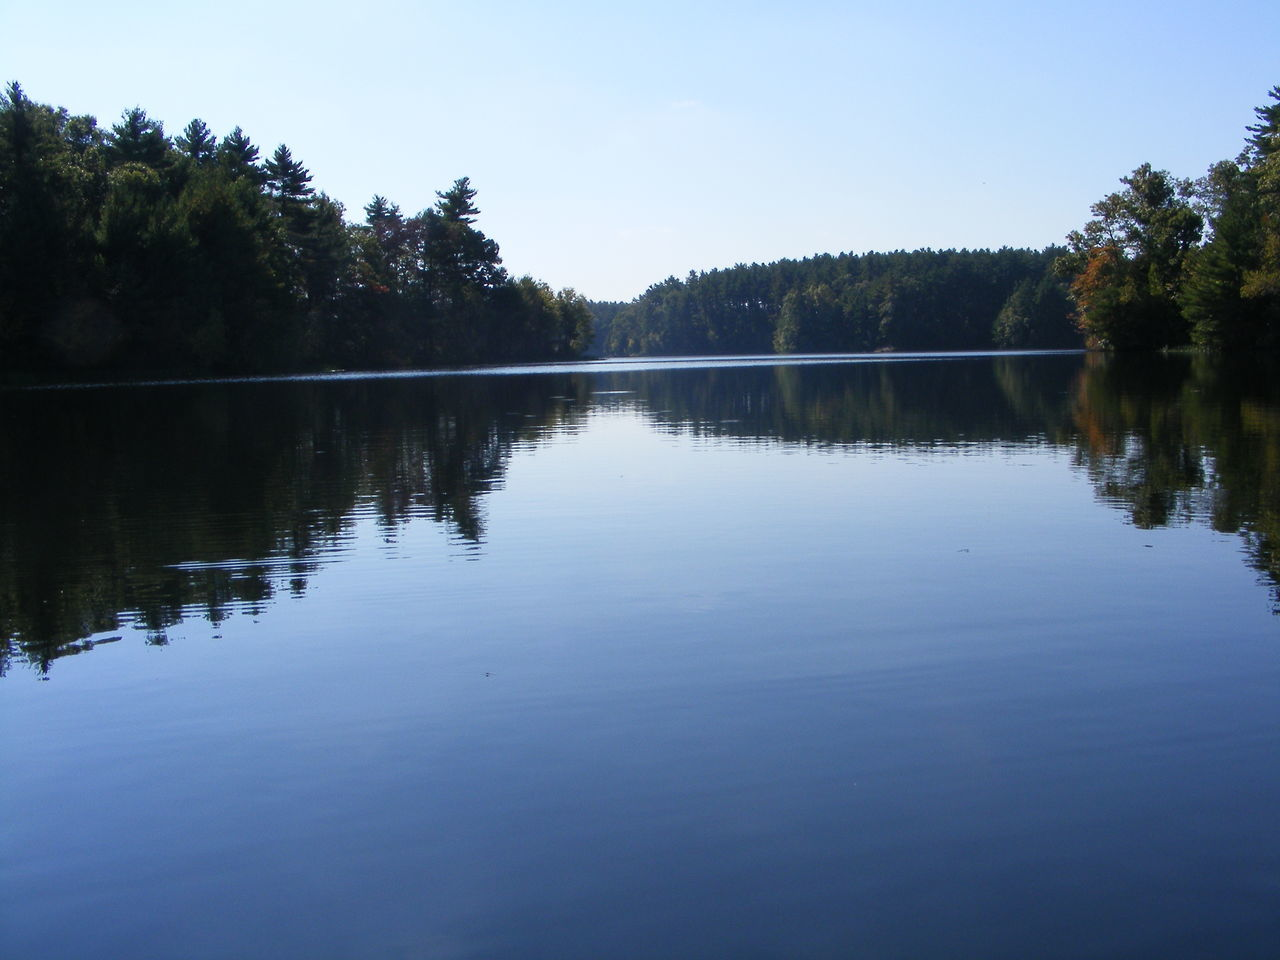 reflection, tree, water, lake, tranquil scene, nature, beauty in nature, tranquility, scenics, no people, blue, outdoors, day, sky